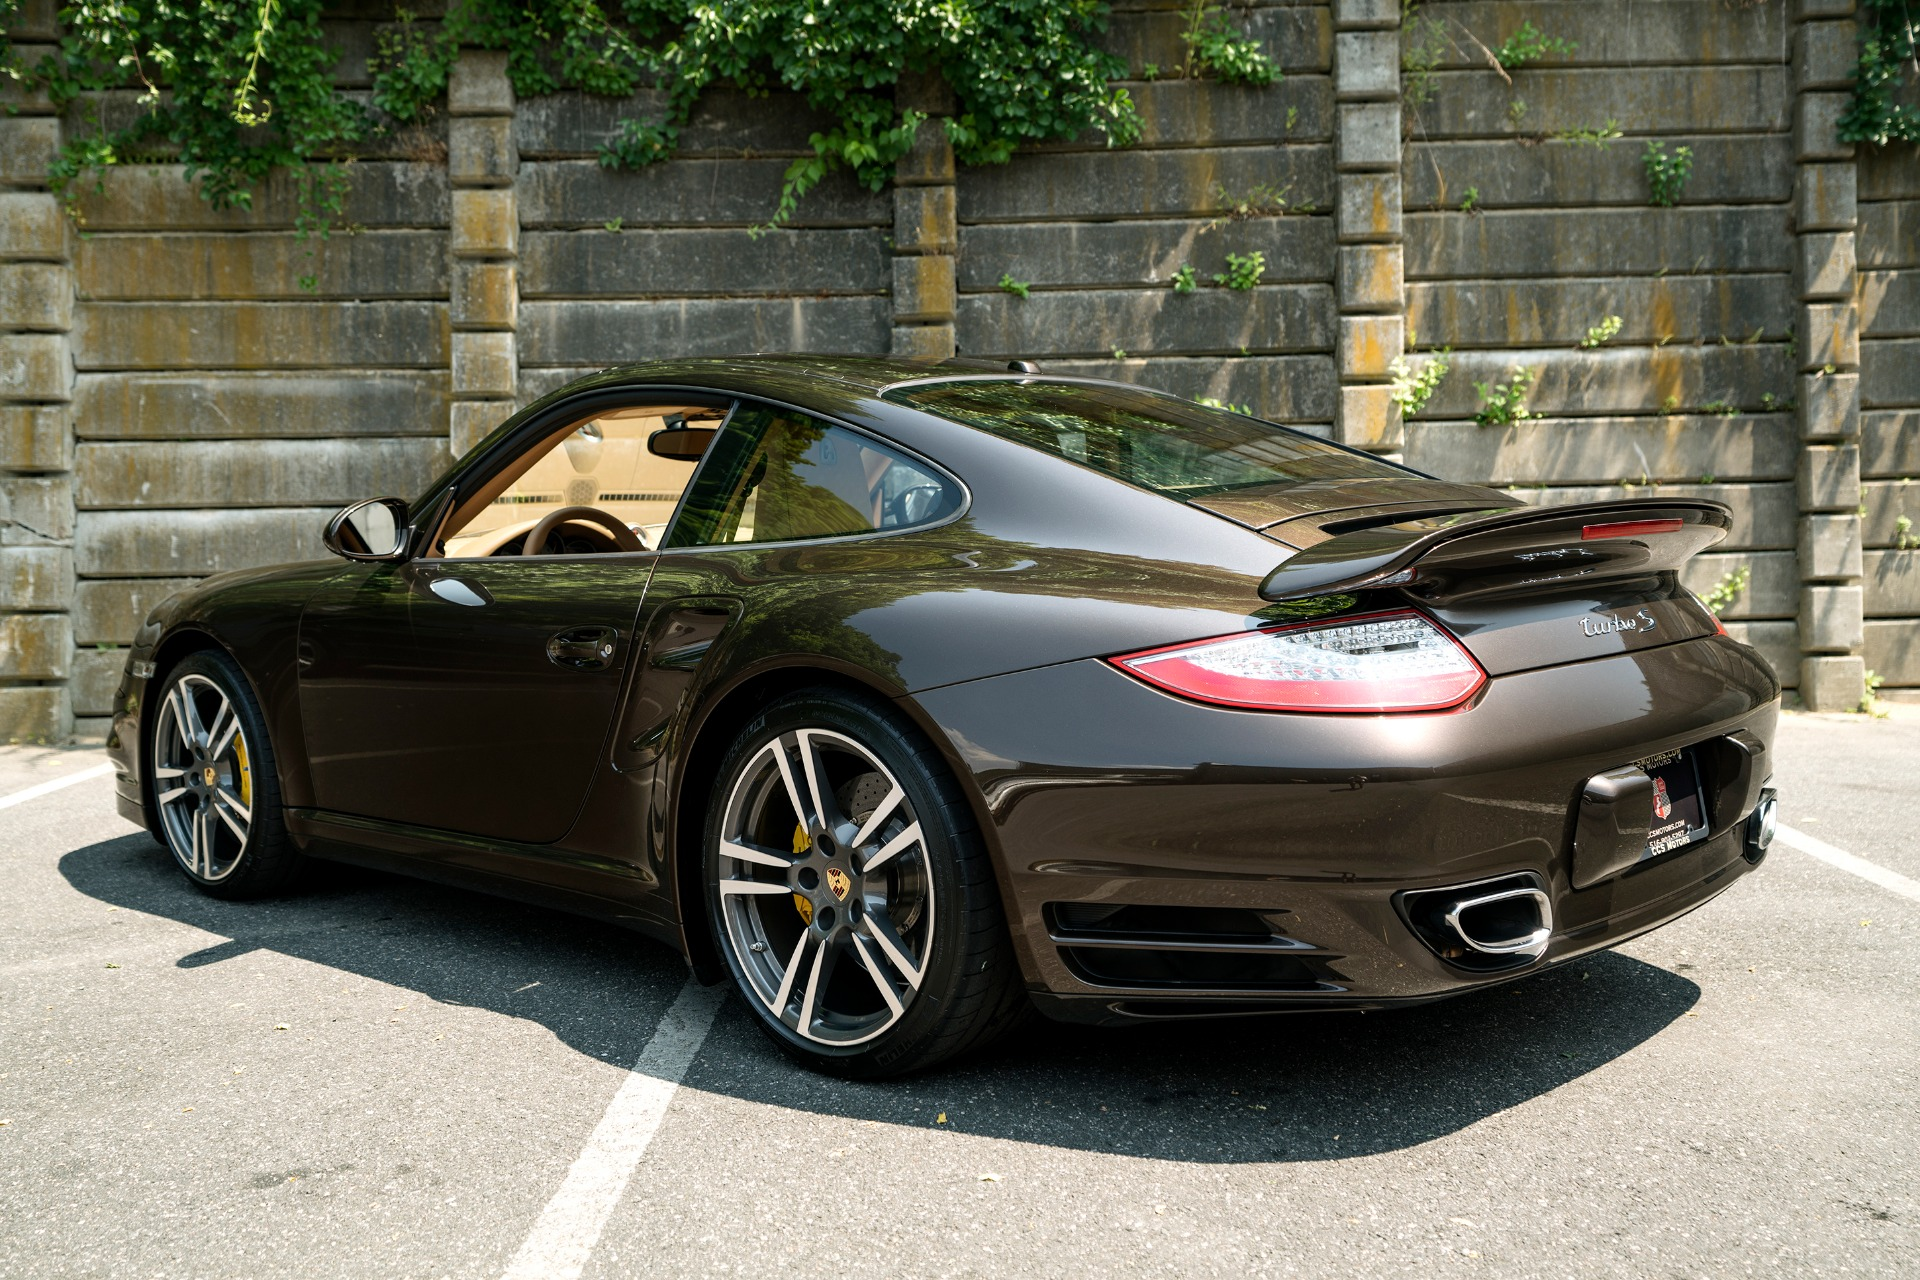 2011 porsche 911 turbo s stock 1396 for sale near oyster bay ny ny porsche dealer. Black Bedroom Furniture Sets. Home Design Ideas